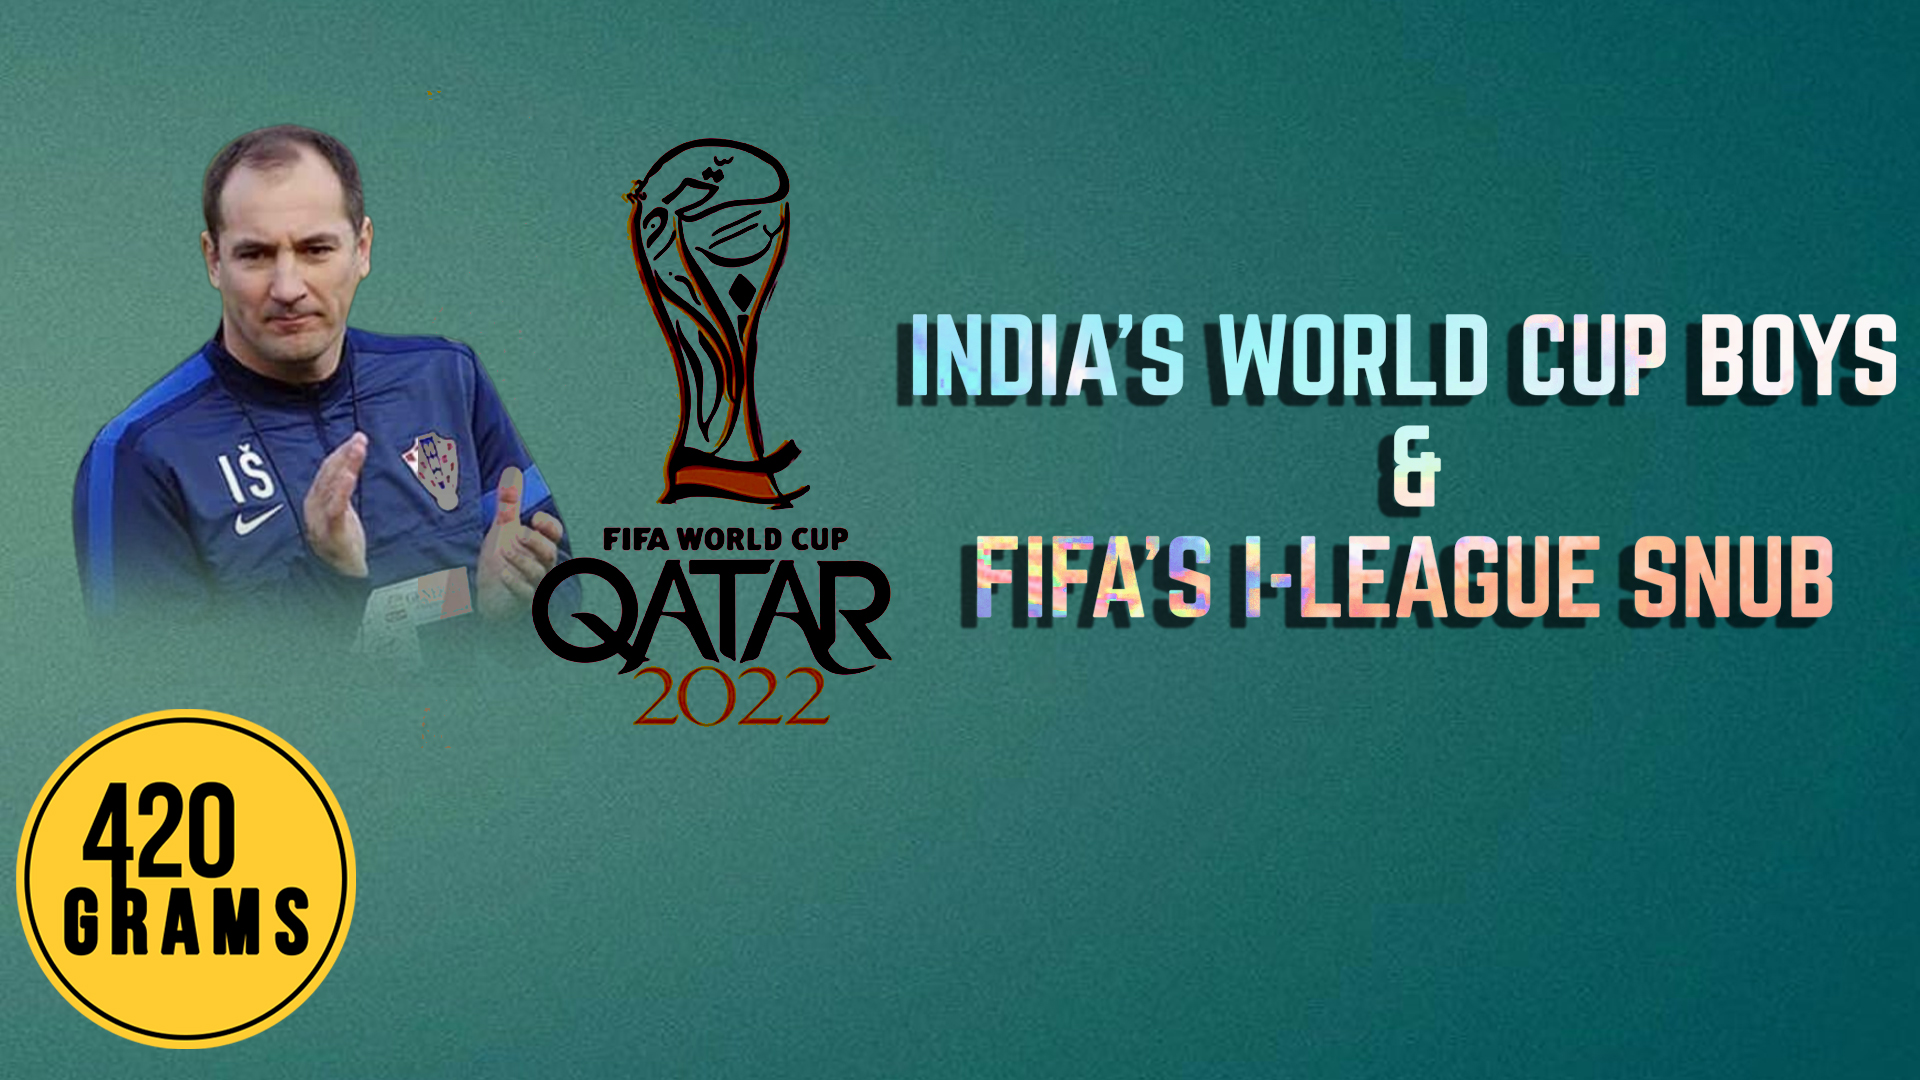 India's World Cup Squad, FIFA's Response to I-League Clubs and More